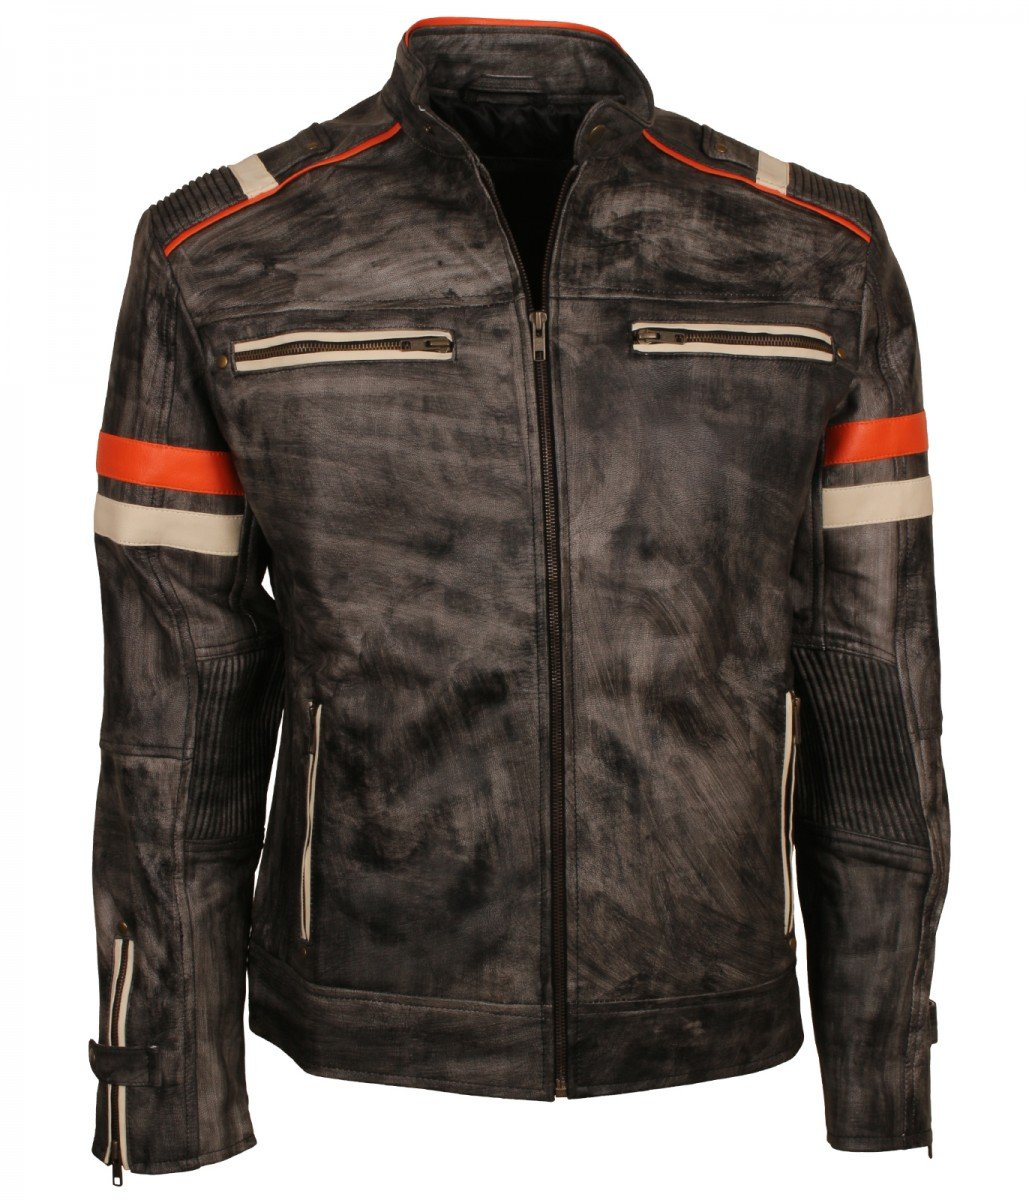 Men/'s Motorcycle Distressed Black /& Brown Biker Real Leather Retro Style Jackets